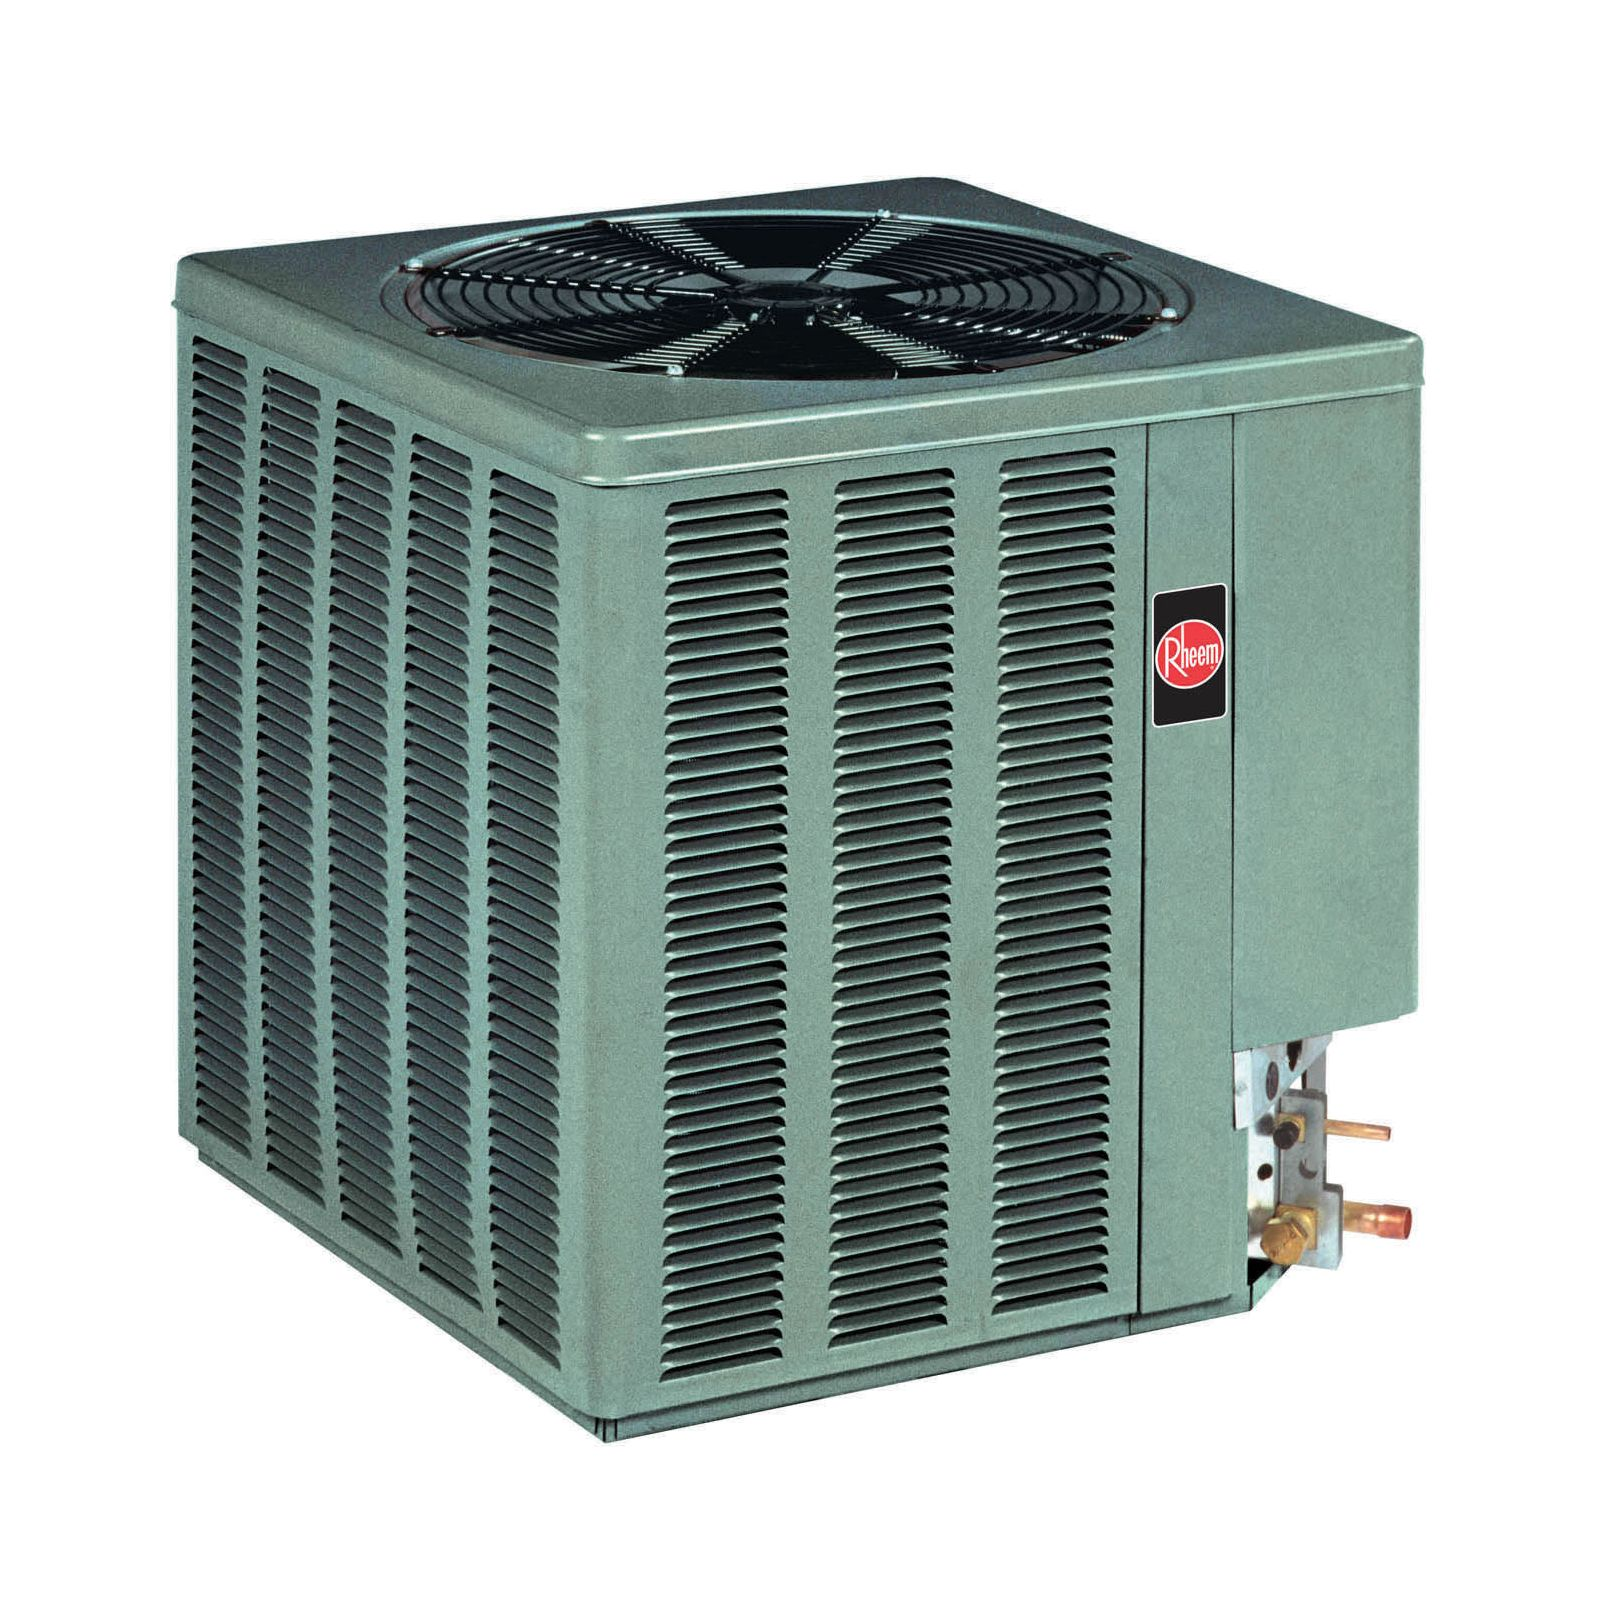 Rheem 15PJL48A01 - Value Series 4 Ton, 15 SEER, R410A Heat Pump